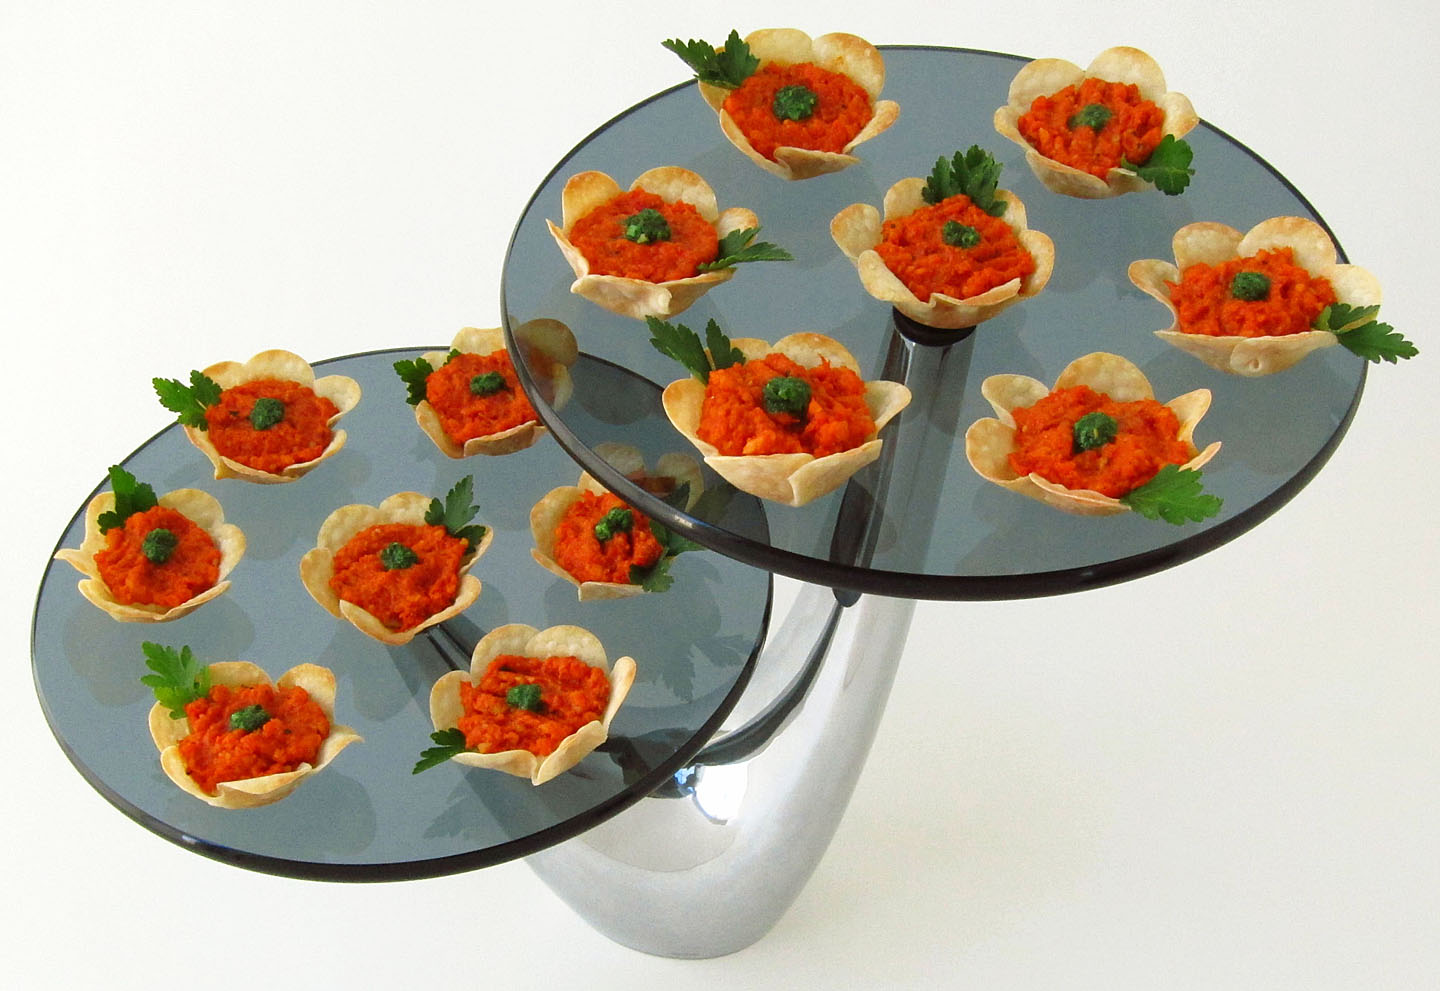 Celebrate the coming of spring with flower appetizers and a